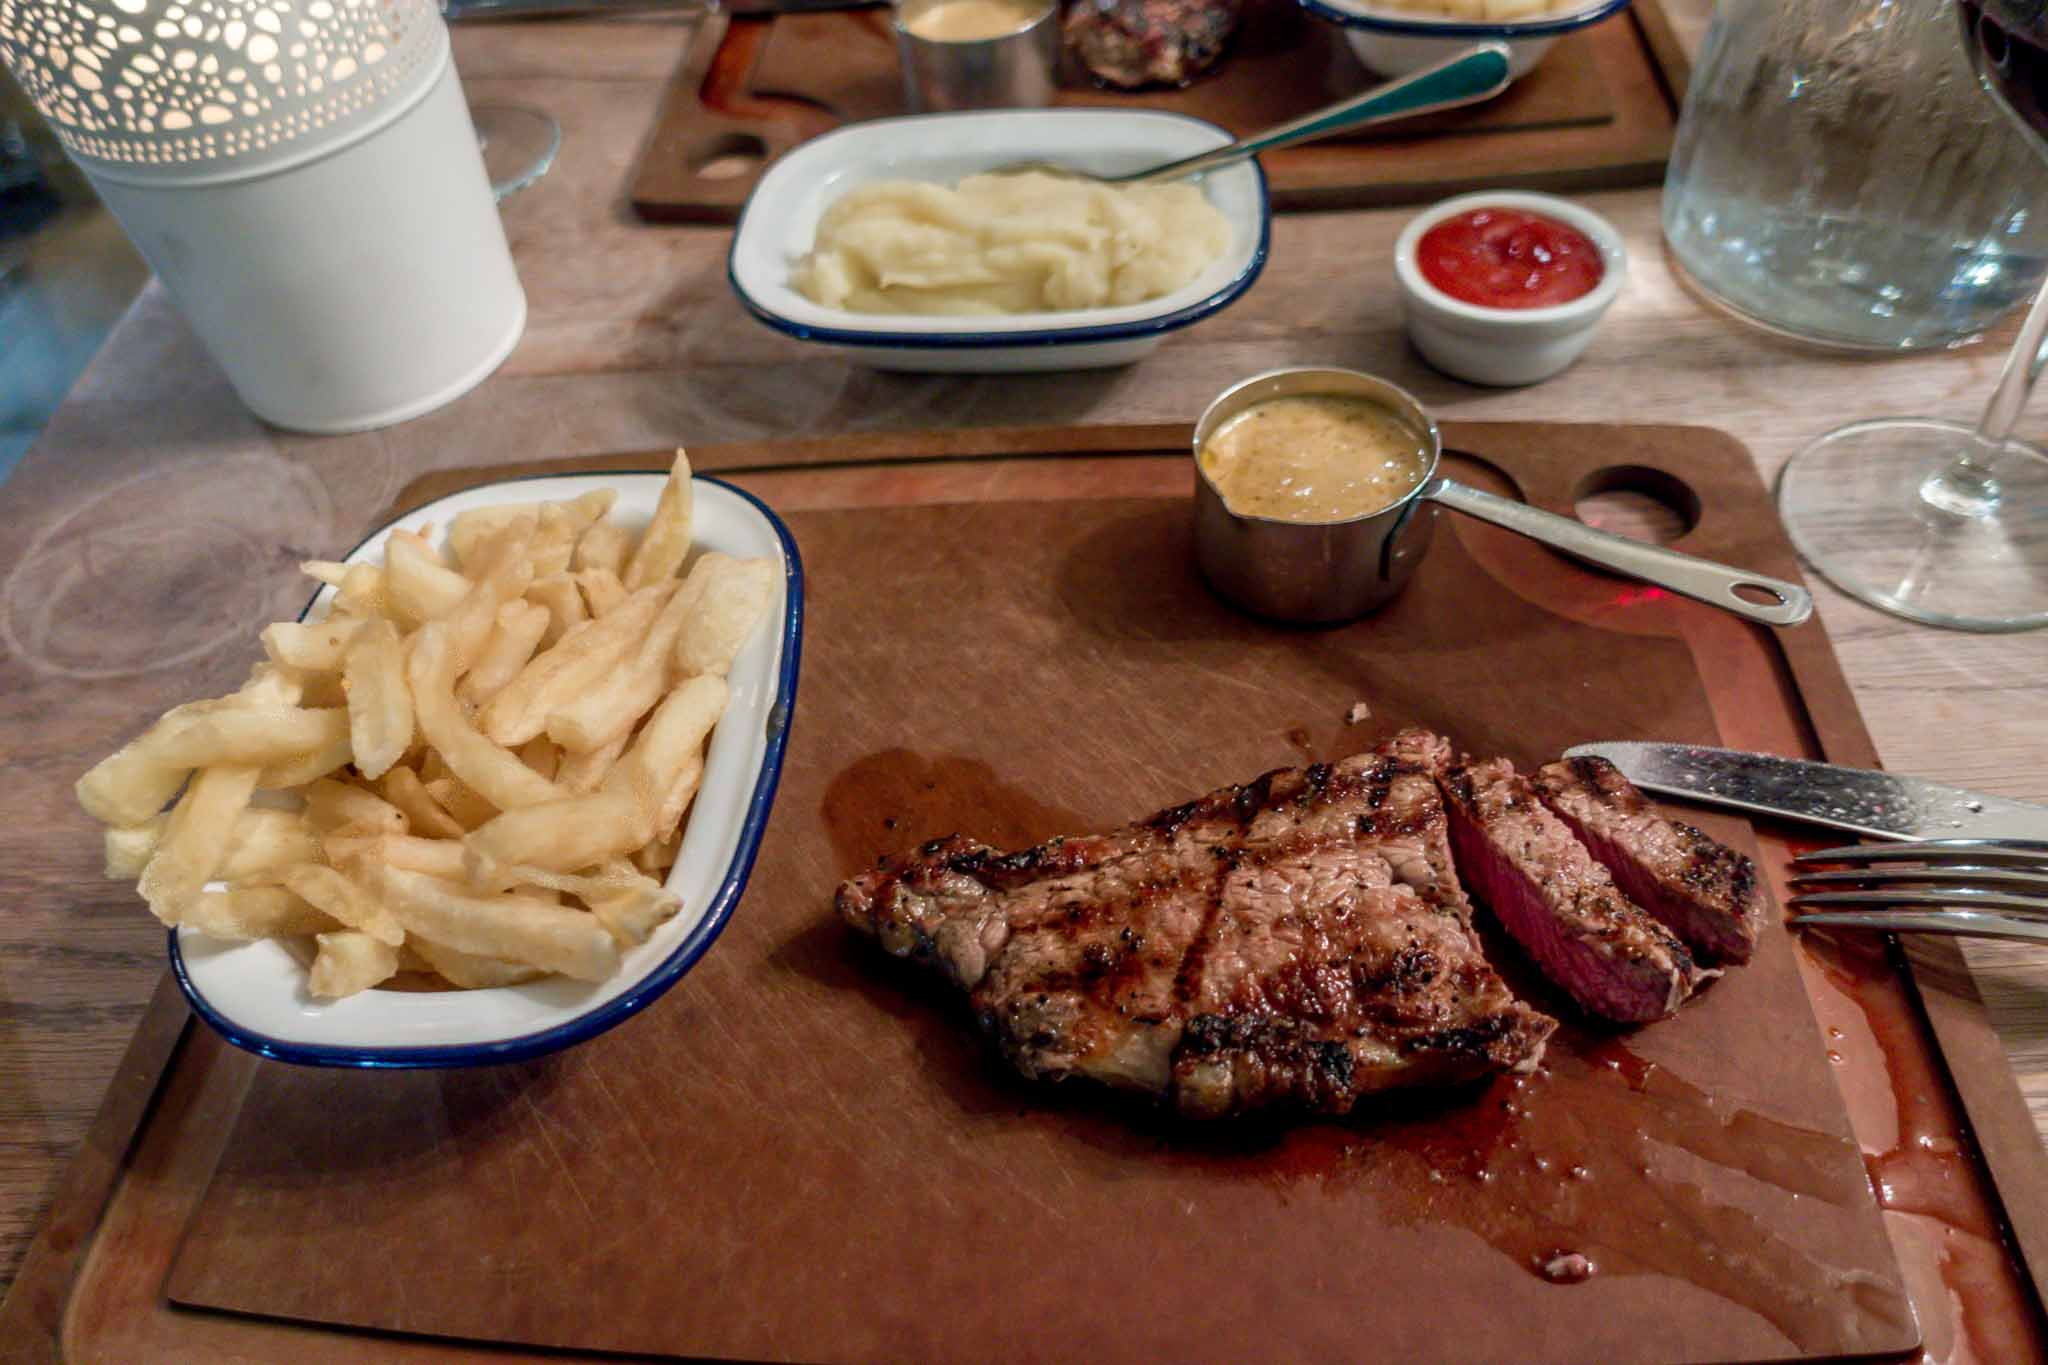 Sliced steak and French fries on a cutting board